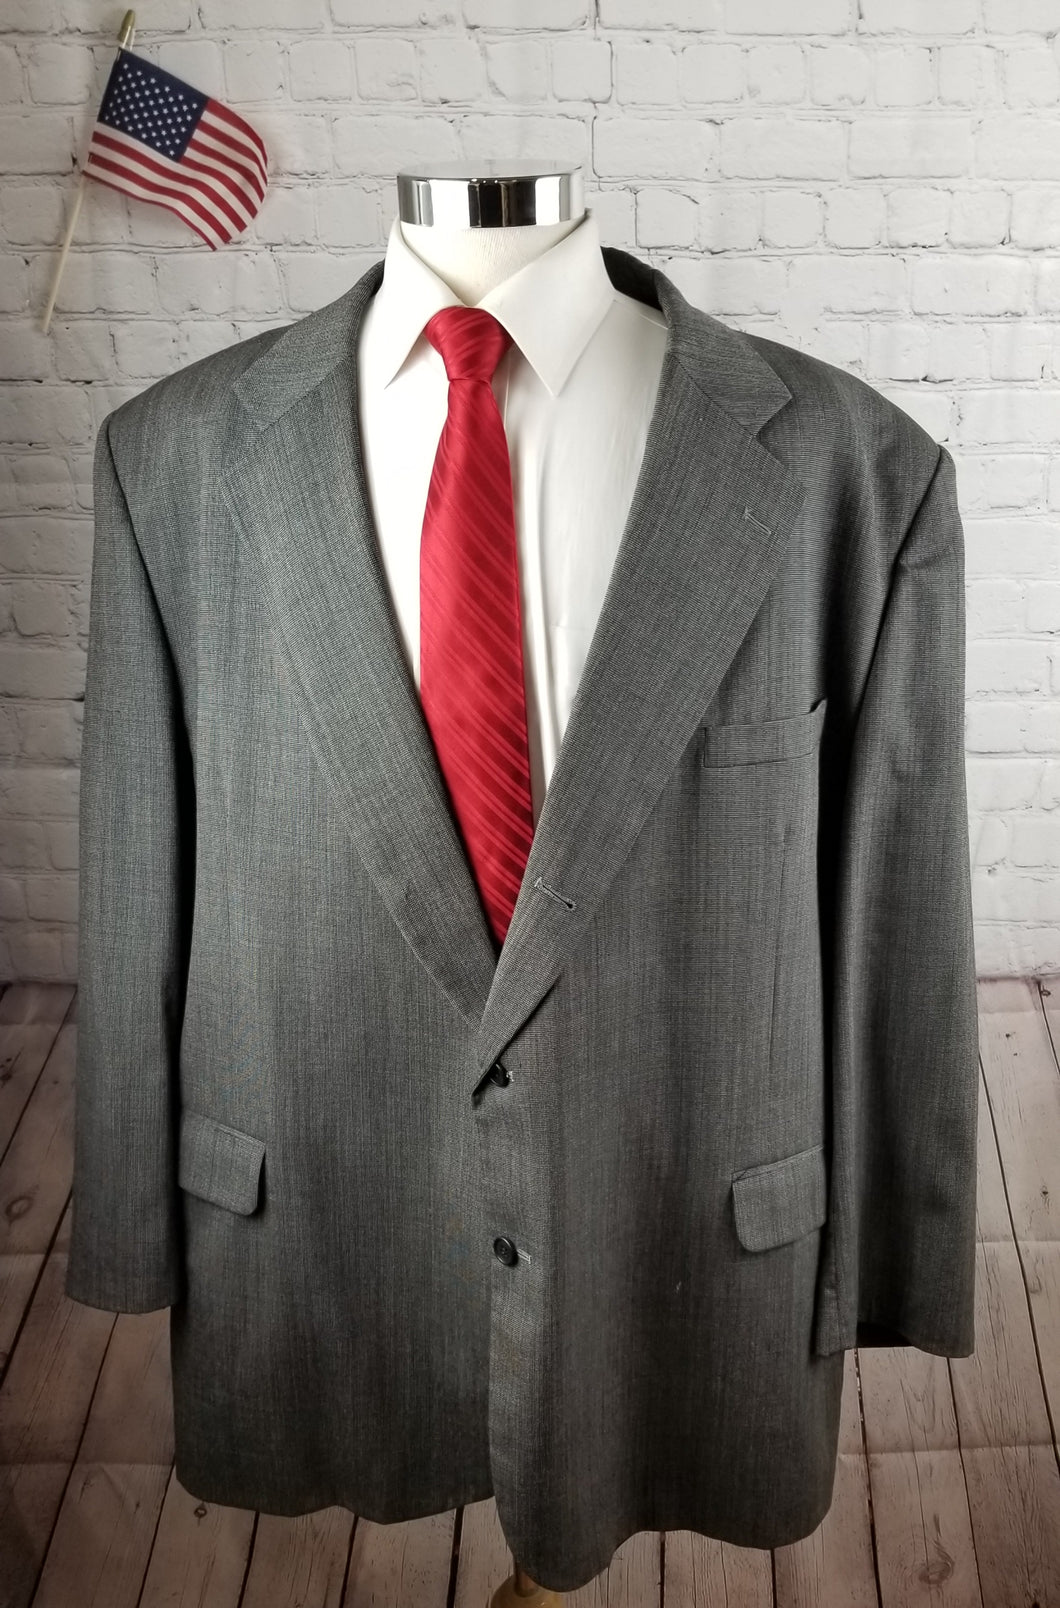 Custom Made Gray Check Suit Jacket 52L $595 - SUIT CHARITY OUTLET